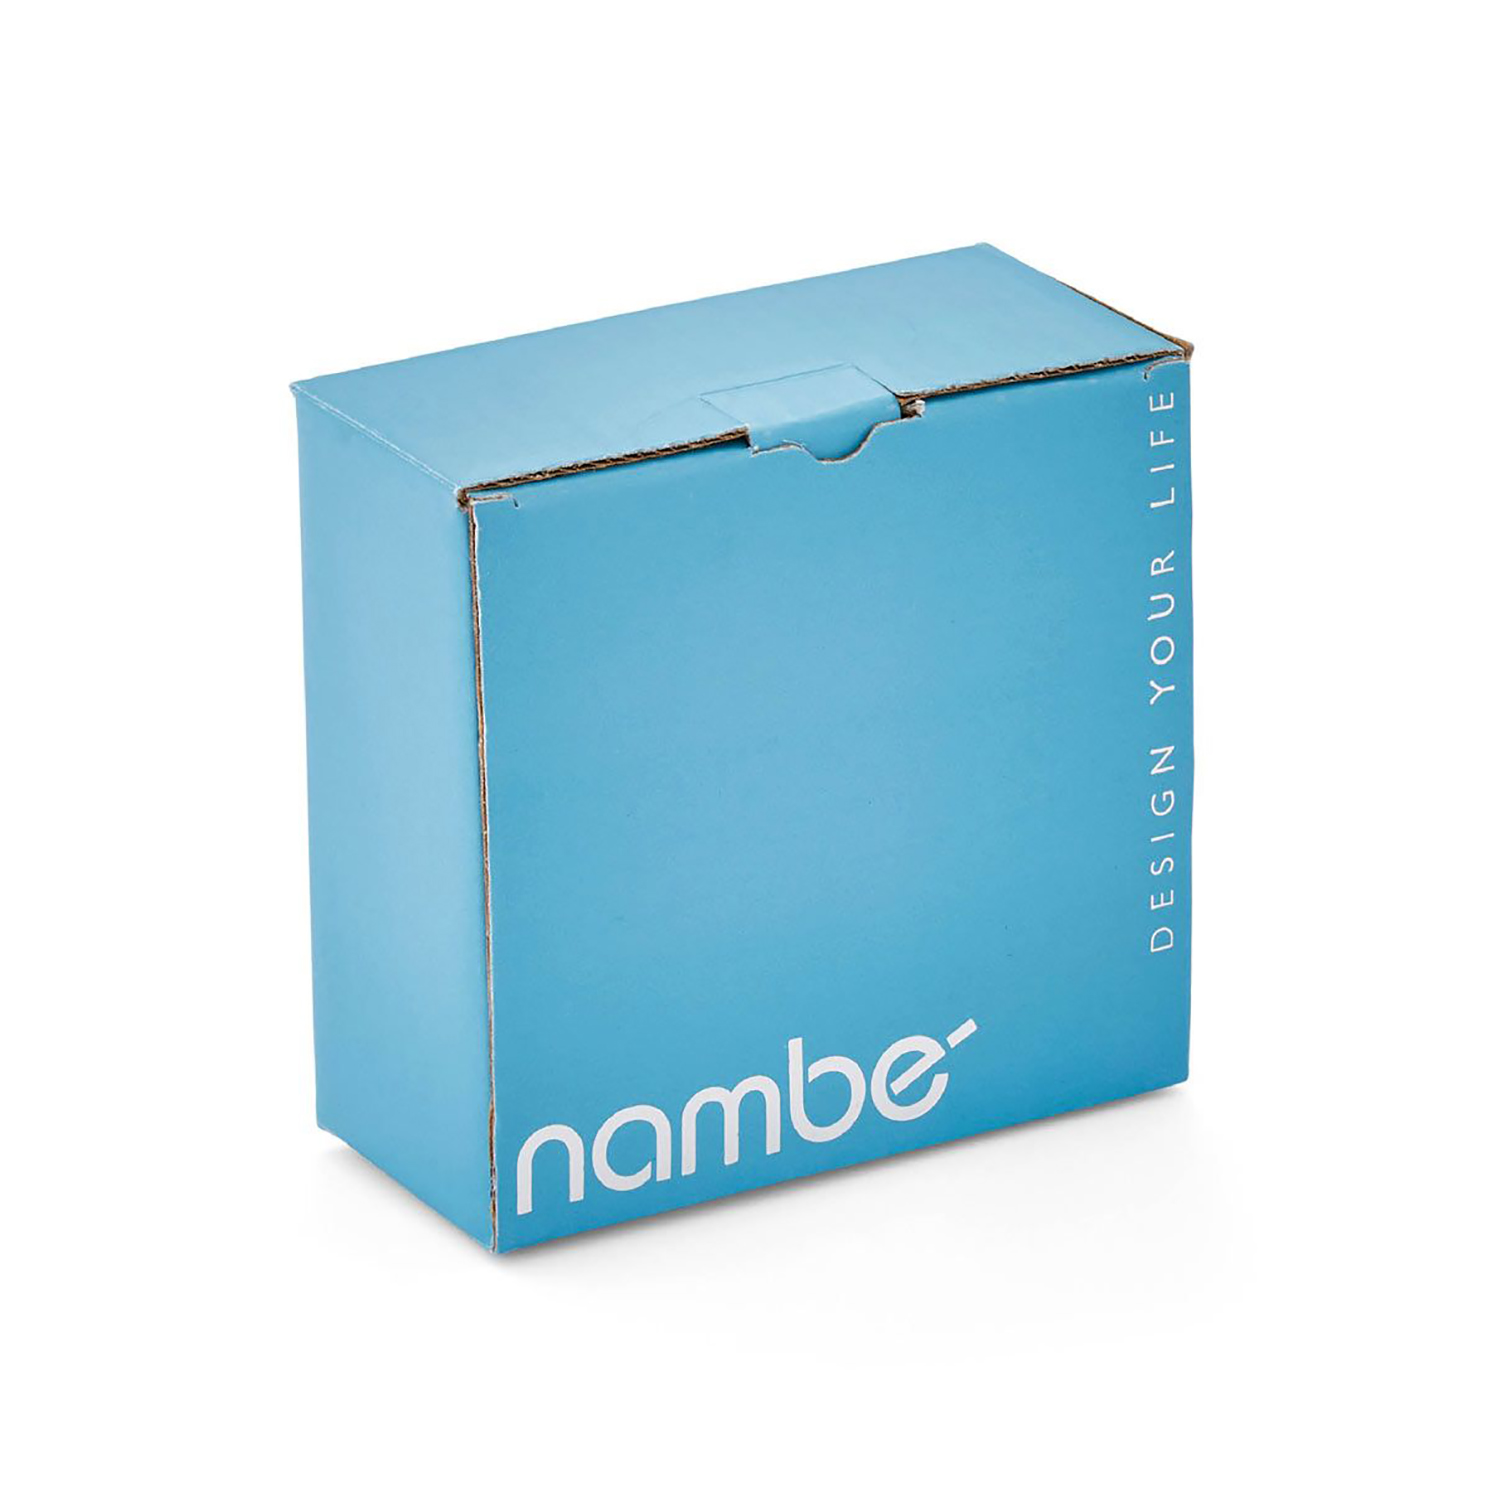 Nambe – Large Copper Canyon Bowl in Gift Box